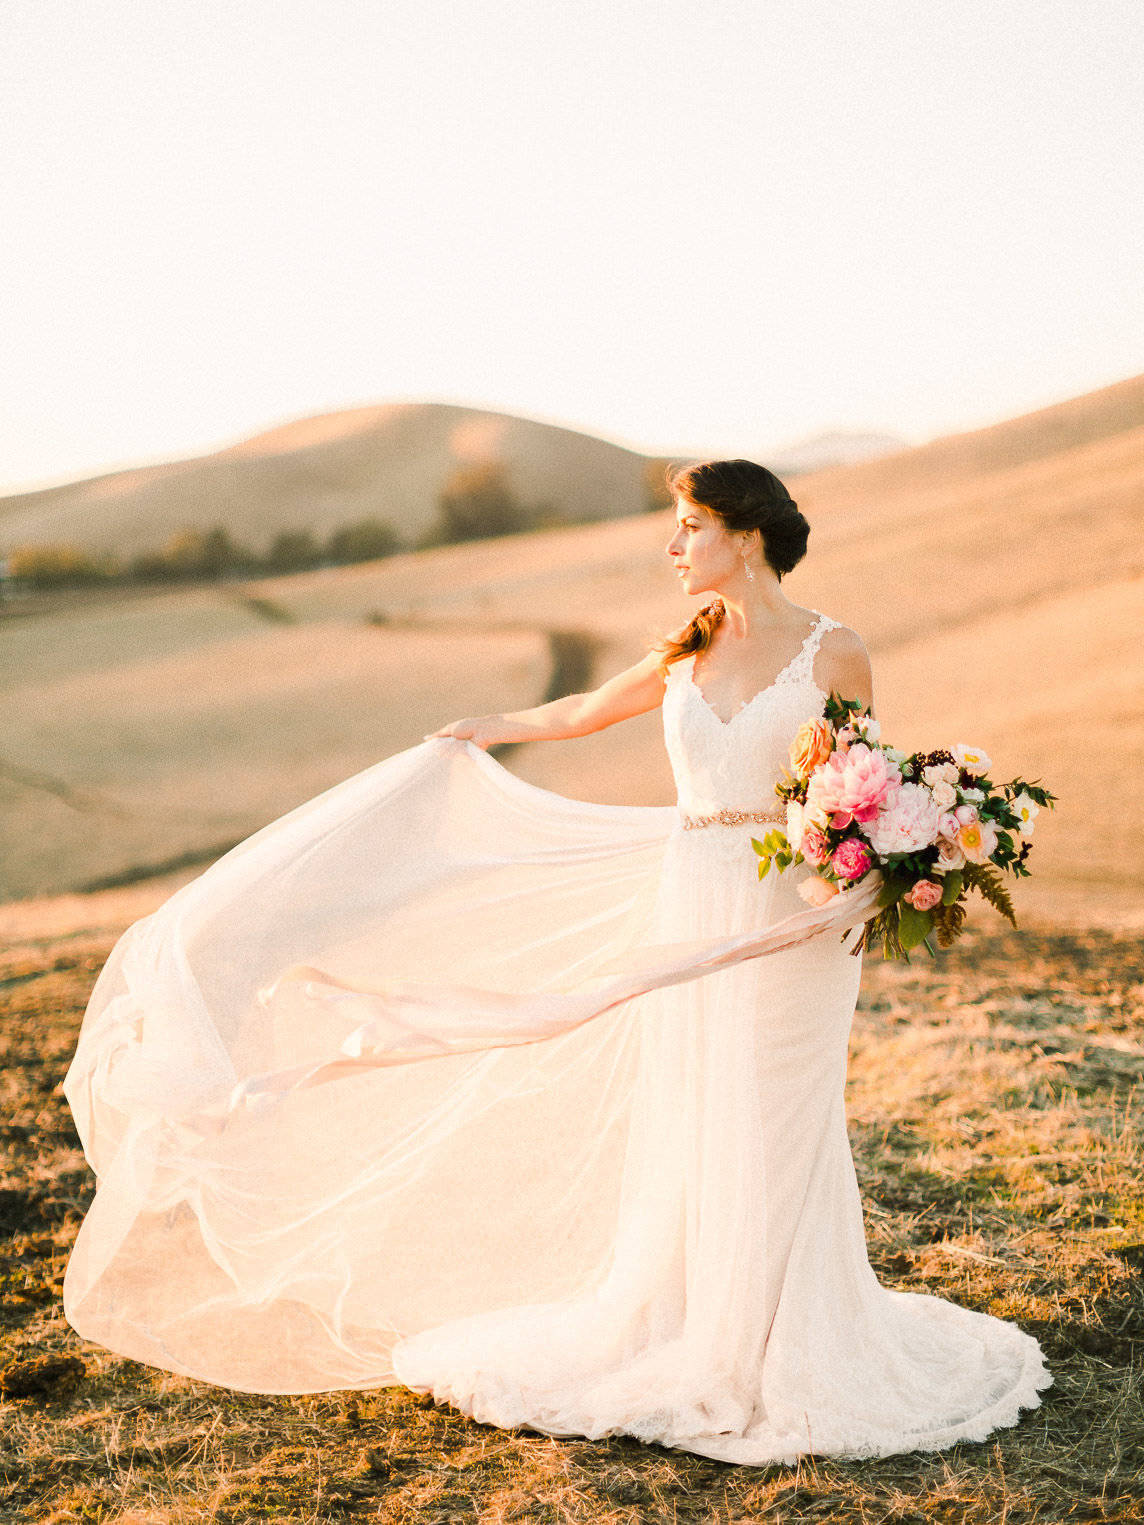 Bride in wedding dress holding bouquet on hill at sunset with skirt whipping in wind